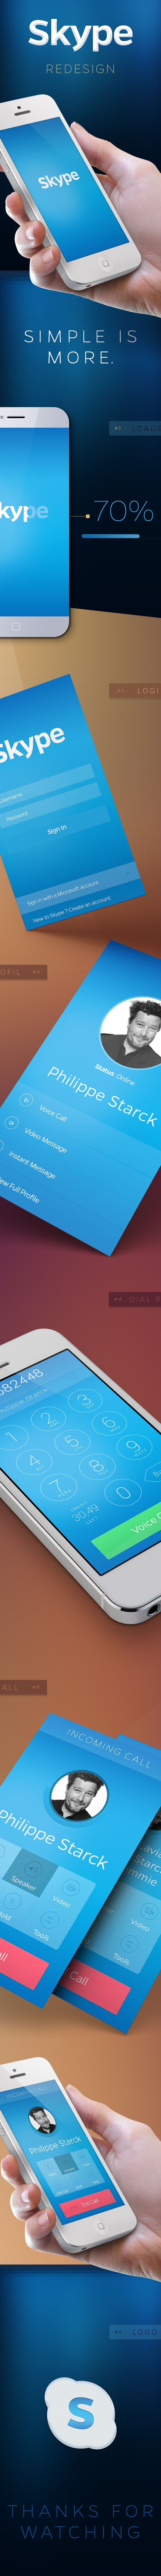 Skype iOS7 Redesign by Guillaume Marc, via Behance